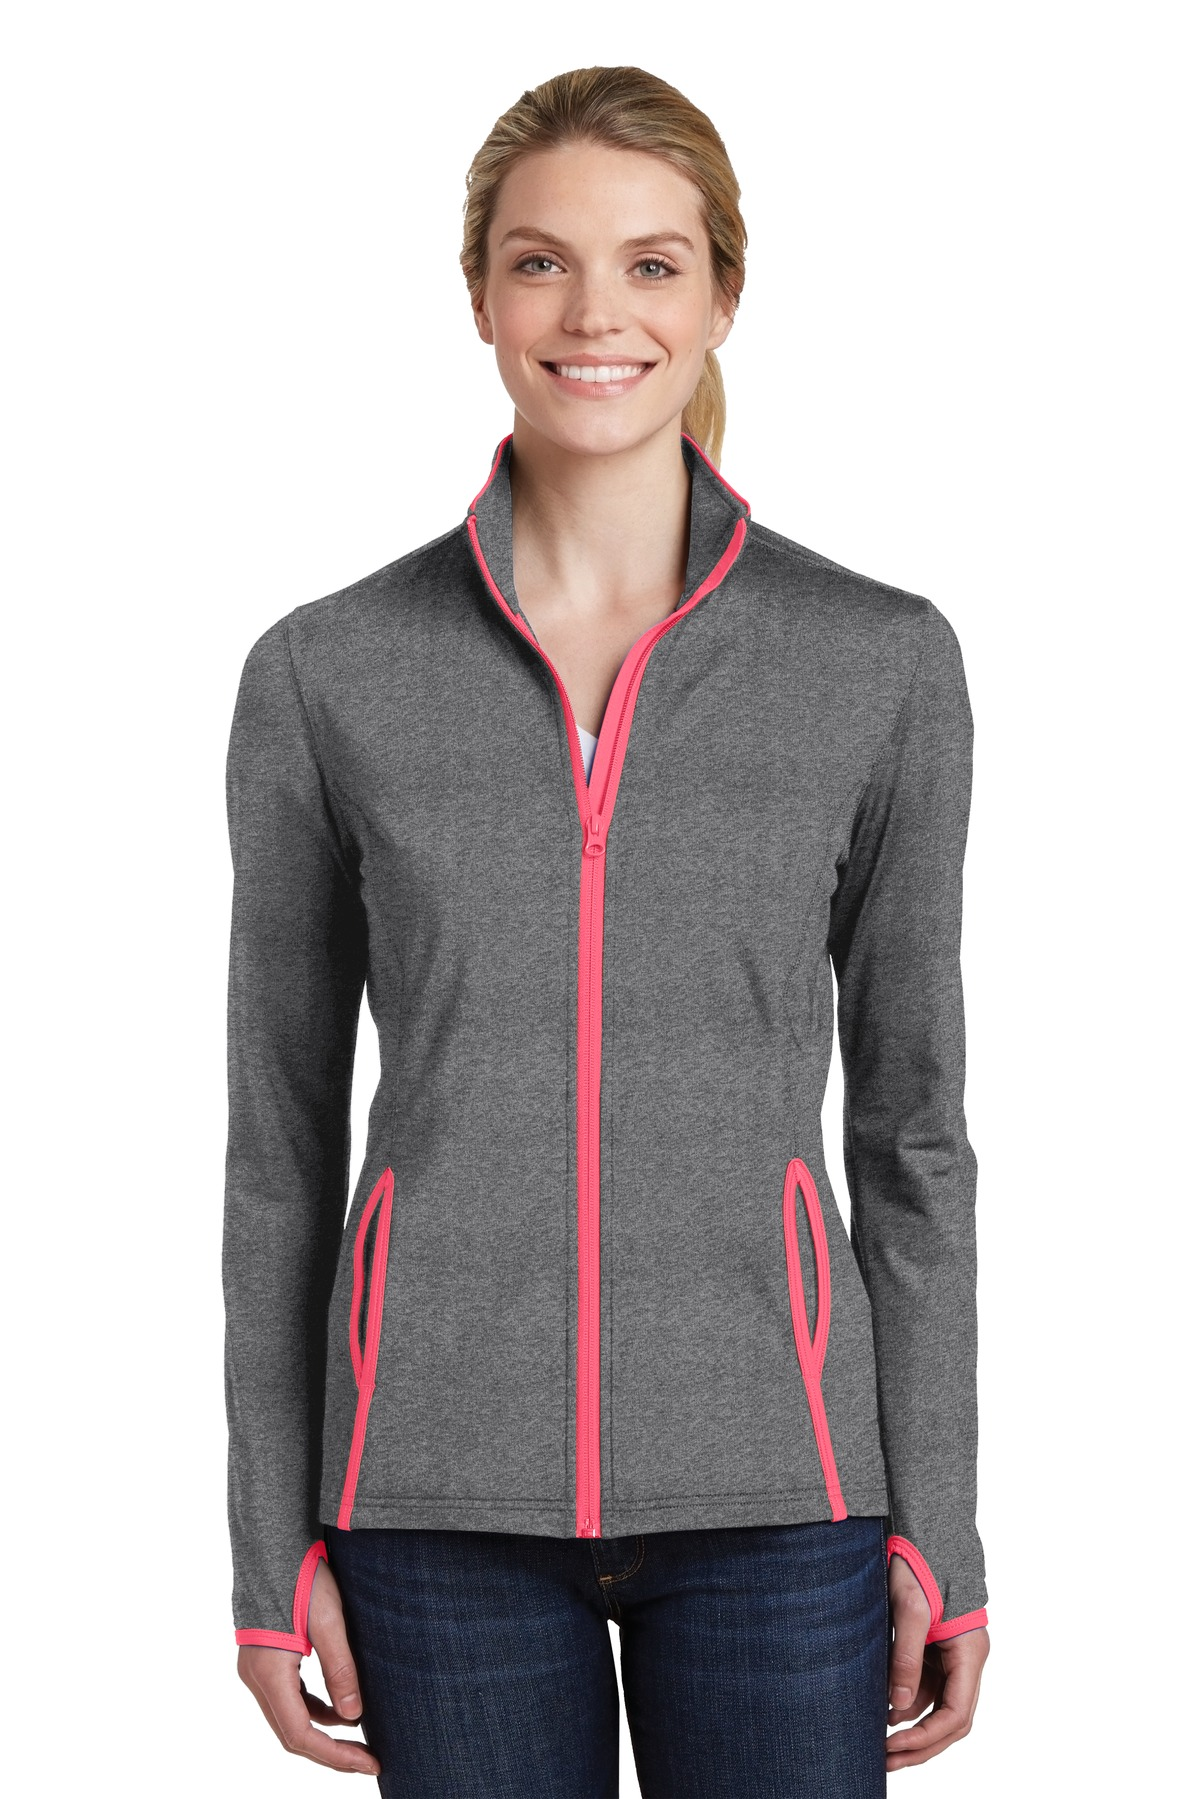 Sport-Tek ®  Ladies Sport-Wick ®  Stretch Contrast Full-Zip Jacket.  LST853 - Charcoal Grey Heather/ Hot Coral